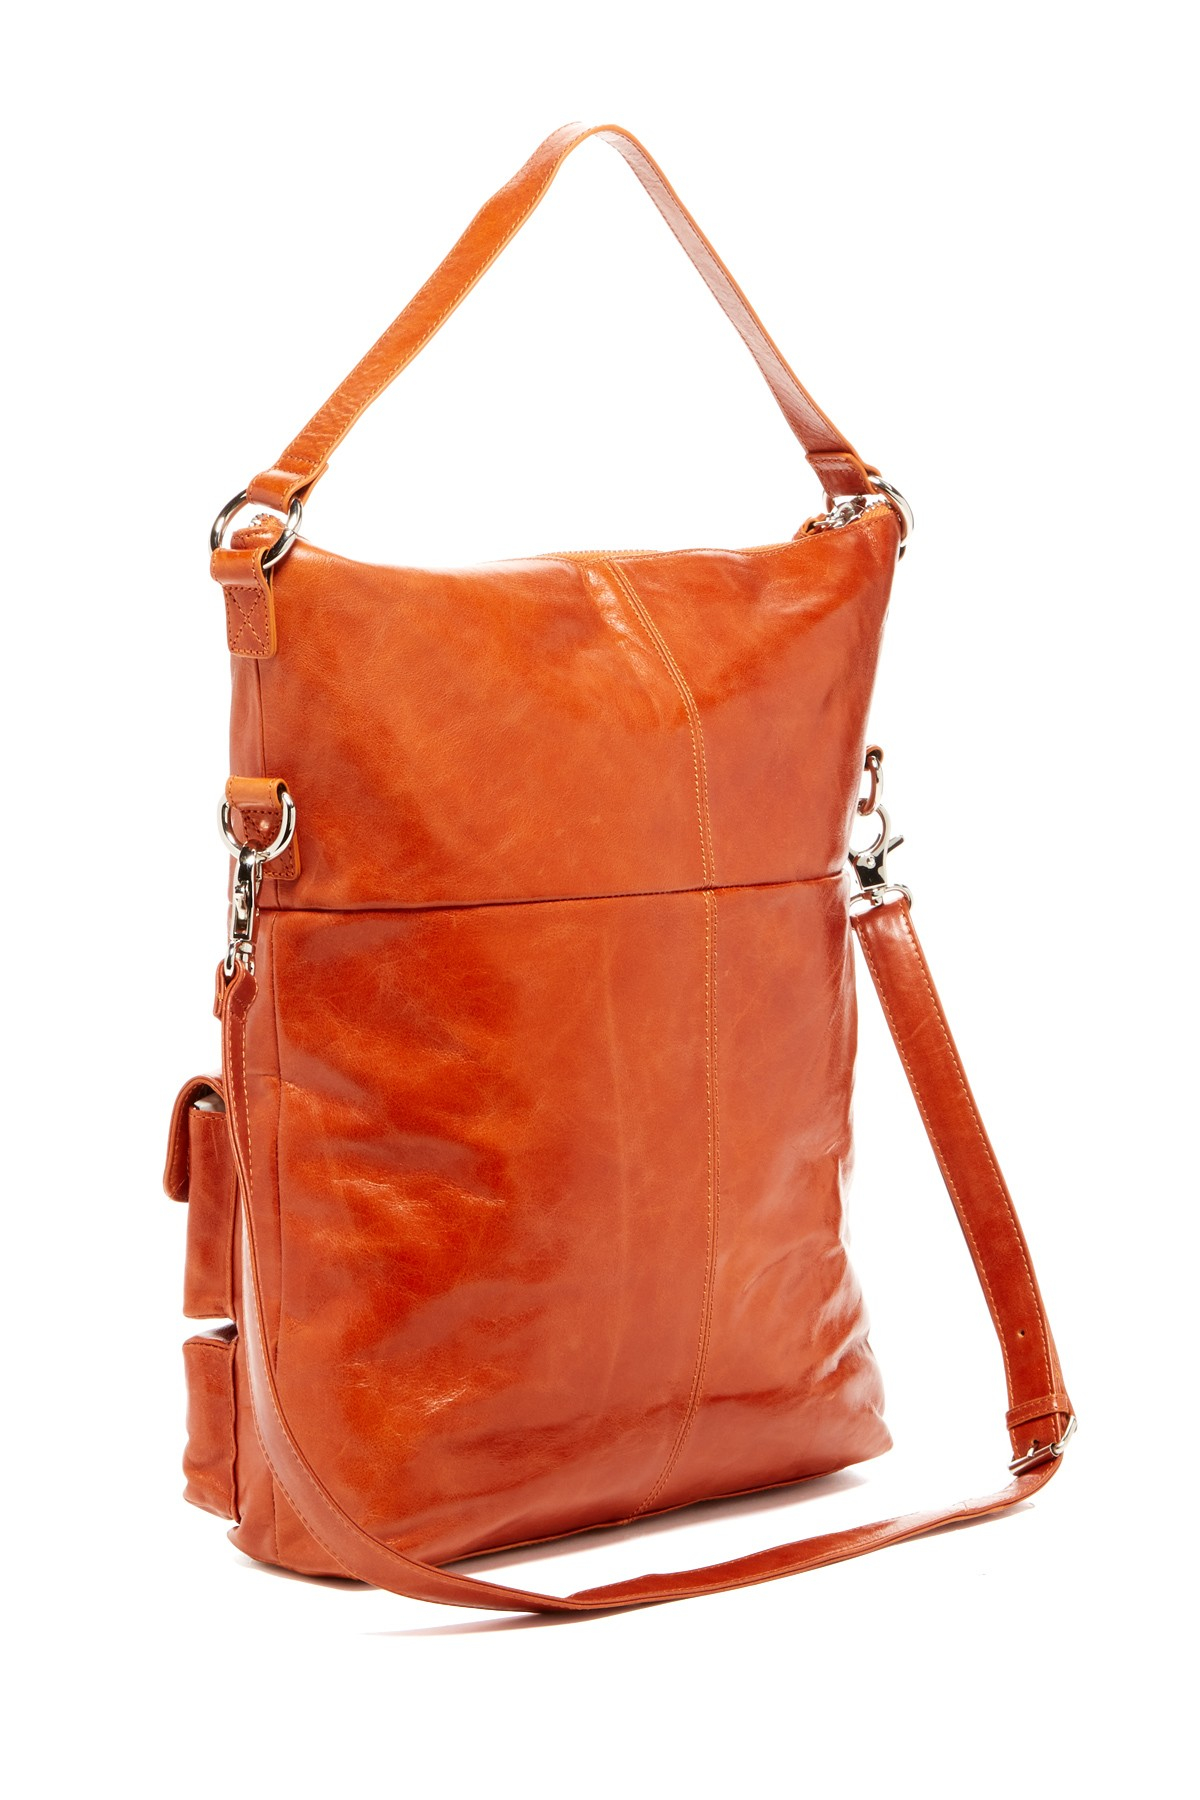 Hobo Explorer Leather Shoulder Bag in Orange | Lyst